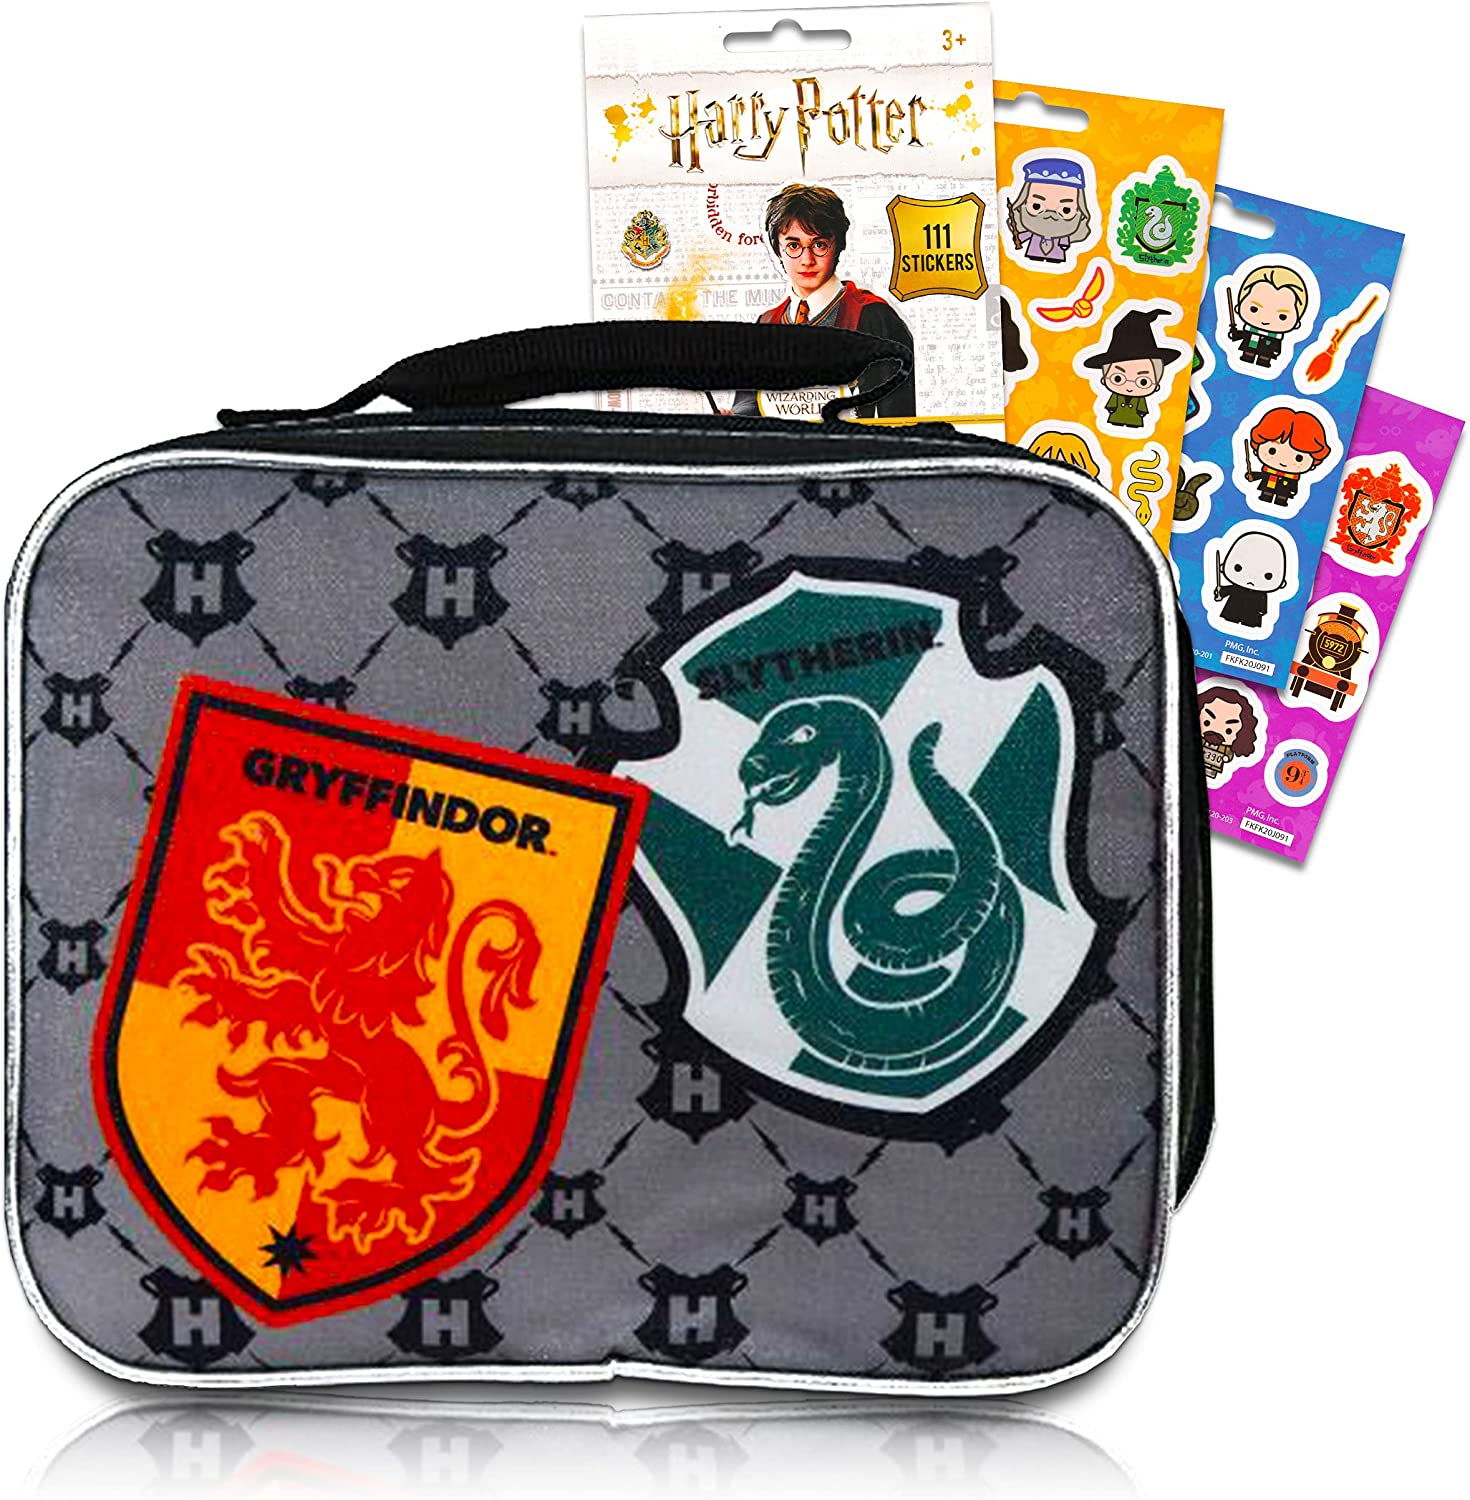 Harry Potter Lunch Classic Box Bundle Lu Cheap mail order shopping ~ Insulated Deluxe